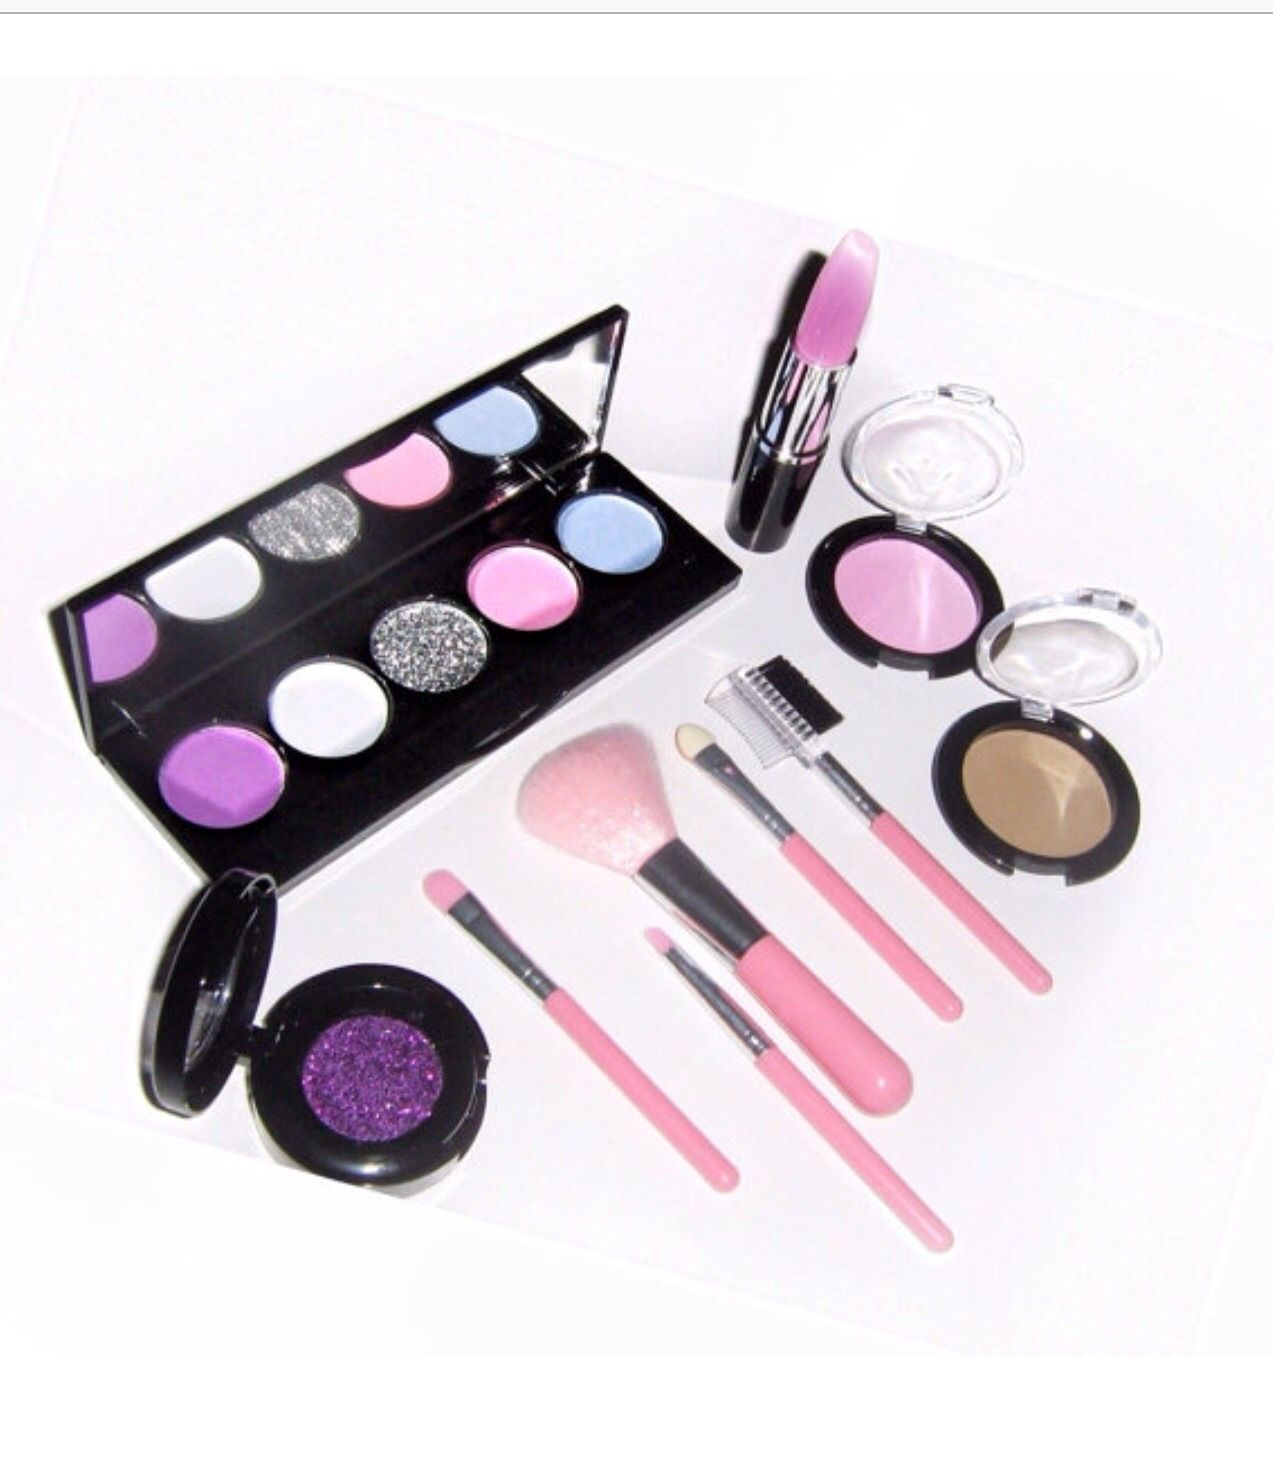 Note This is not real makeup Kit incl. 5palette pretend